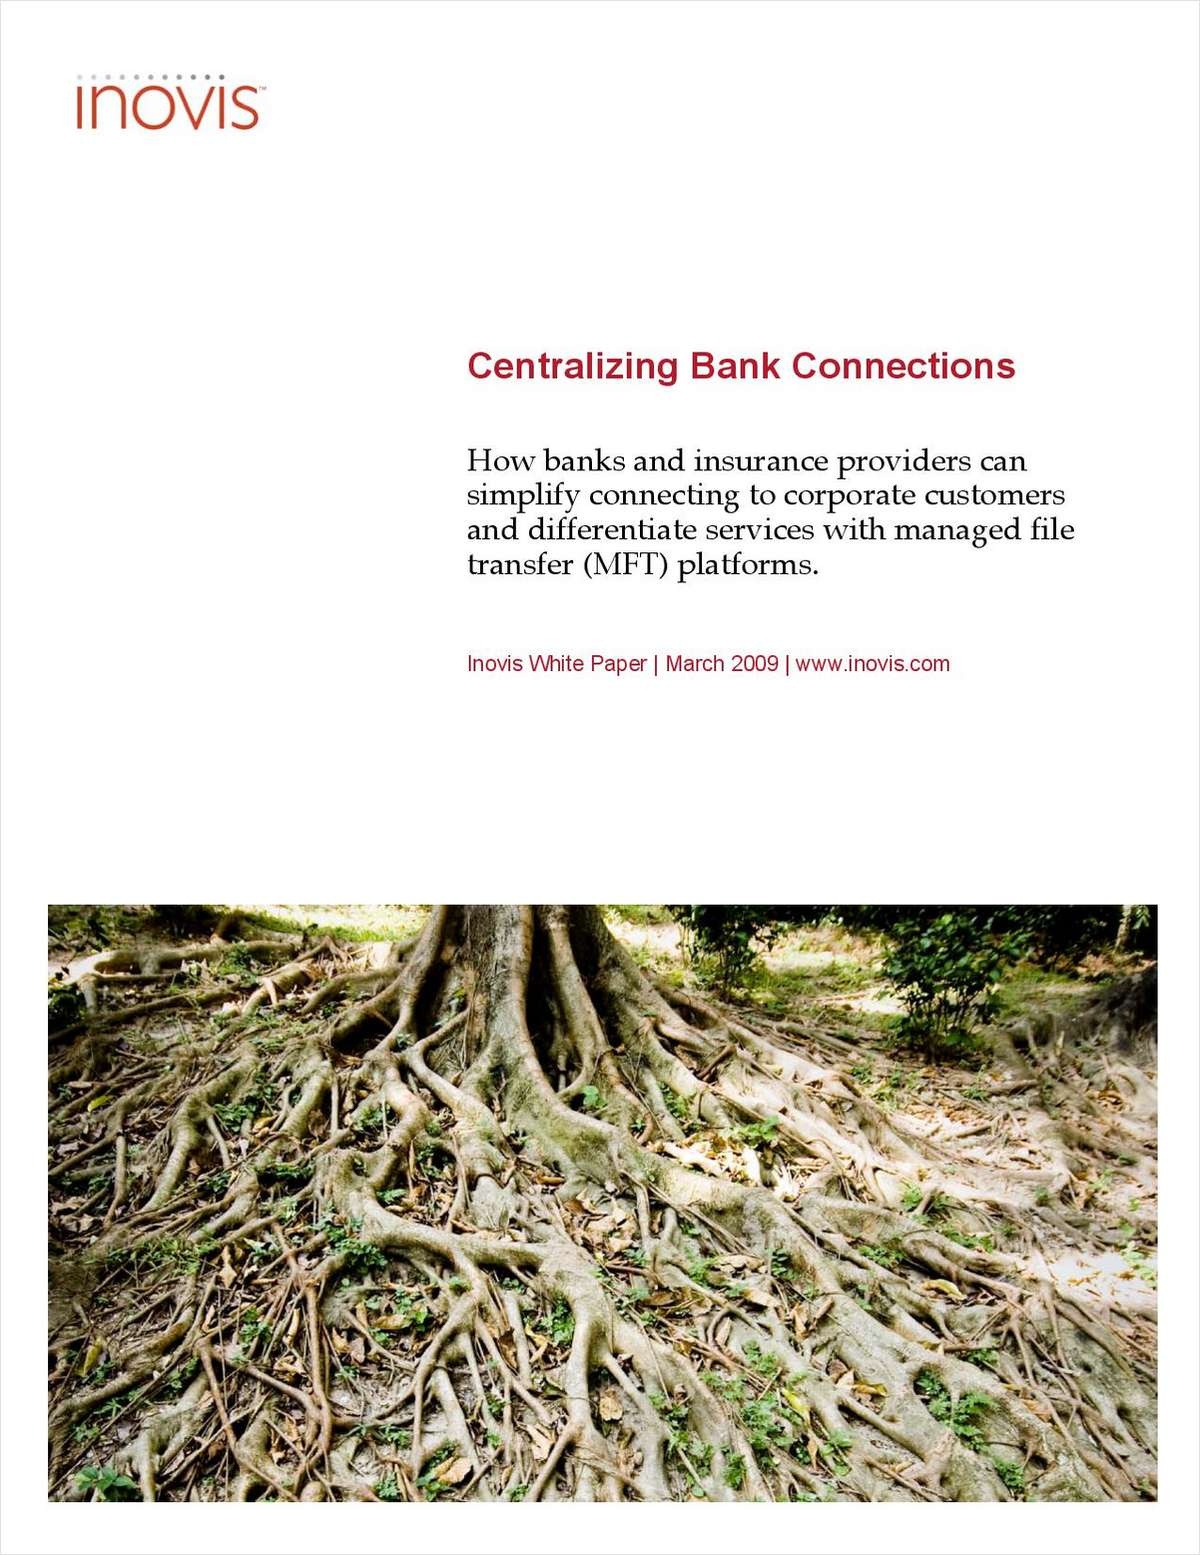 A New Approach to Centralizing Bank Connections